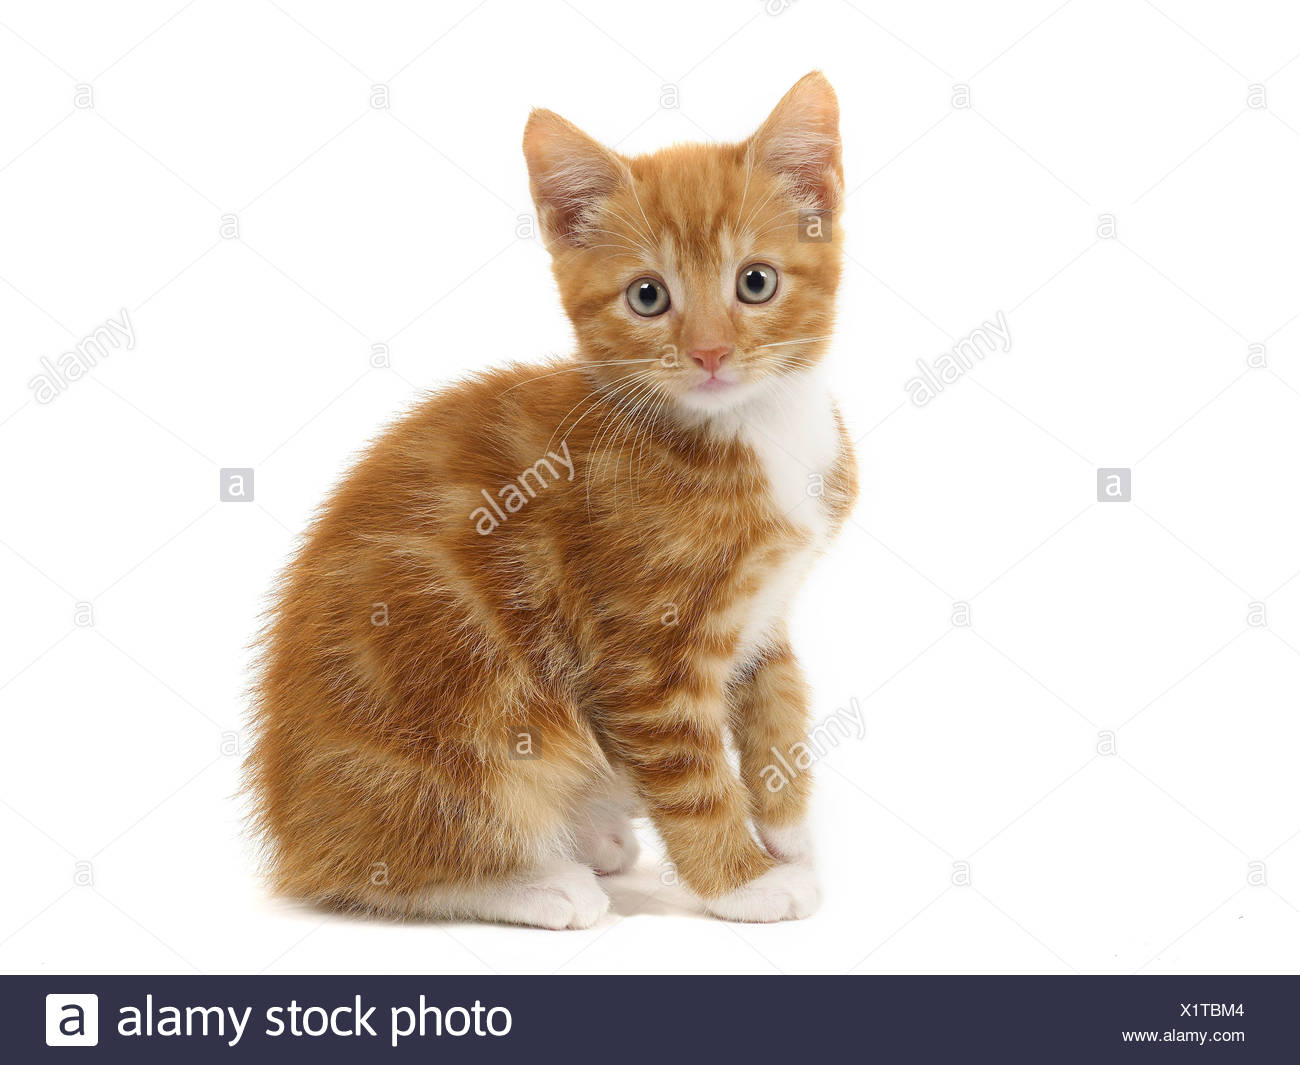 A small ginger and white kitten. - Stock Image